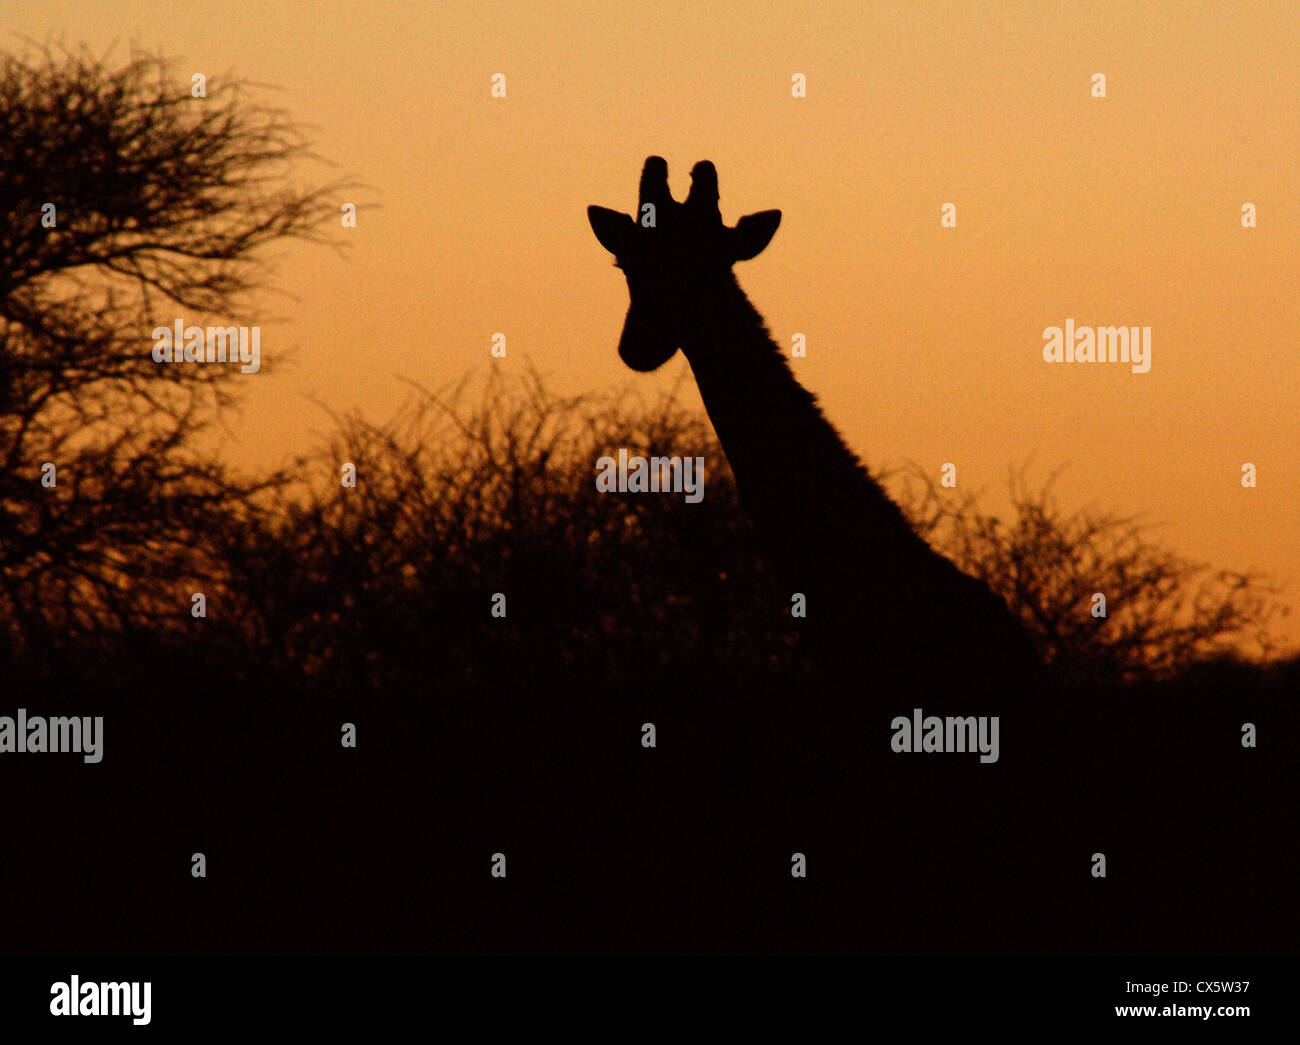 Silhouette of a Giraffe at sunset on African plains. - Stock Image